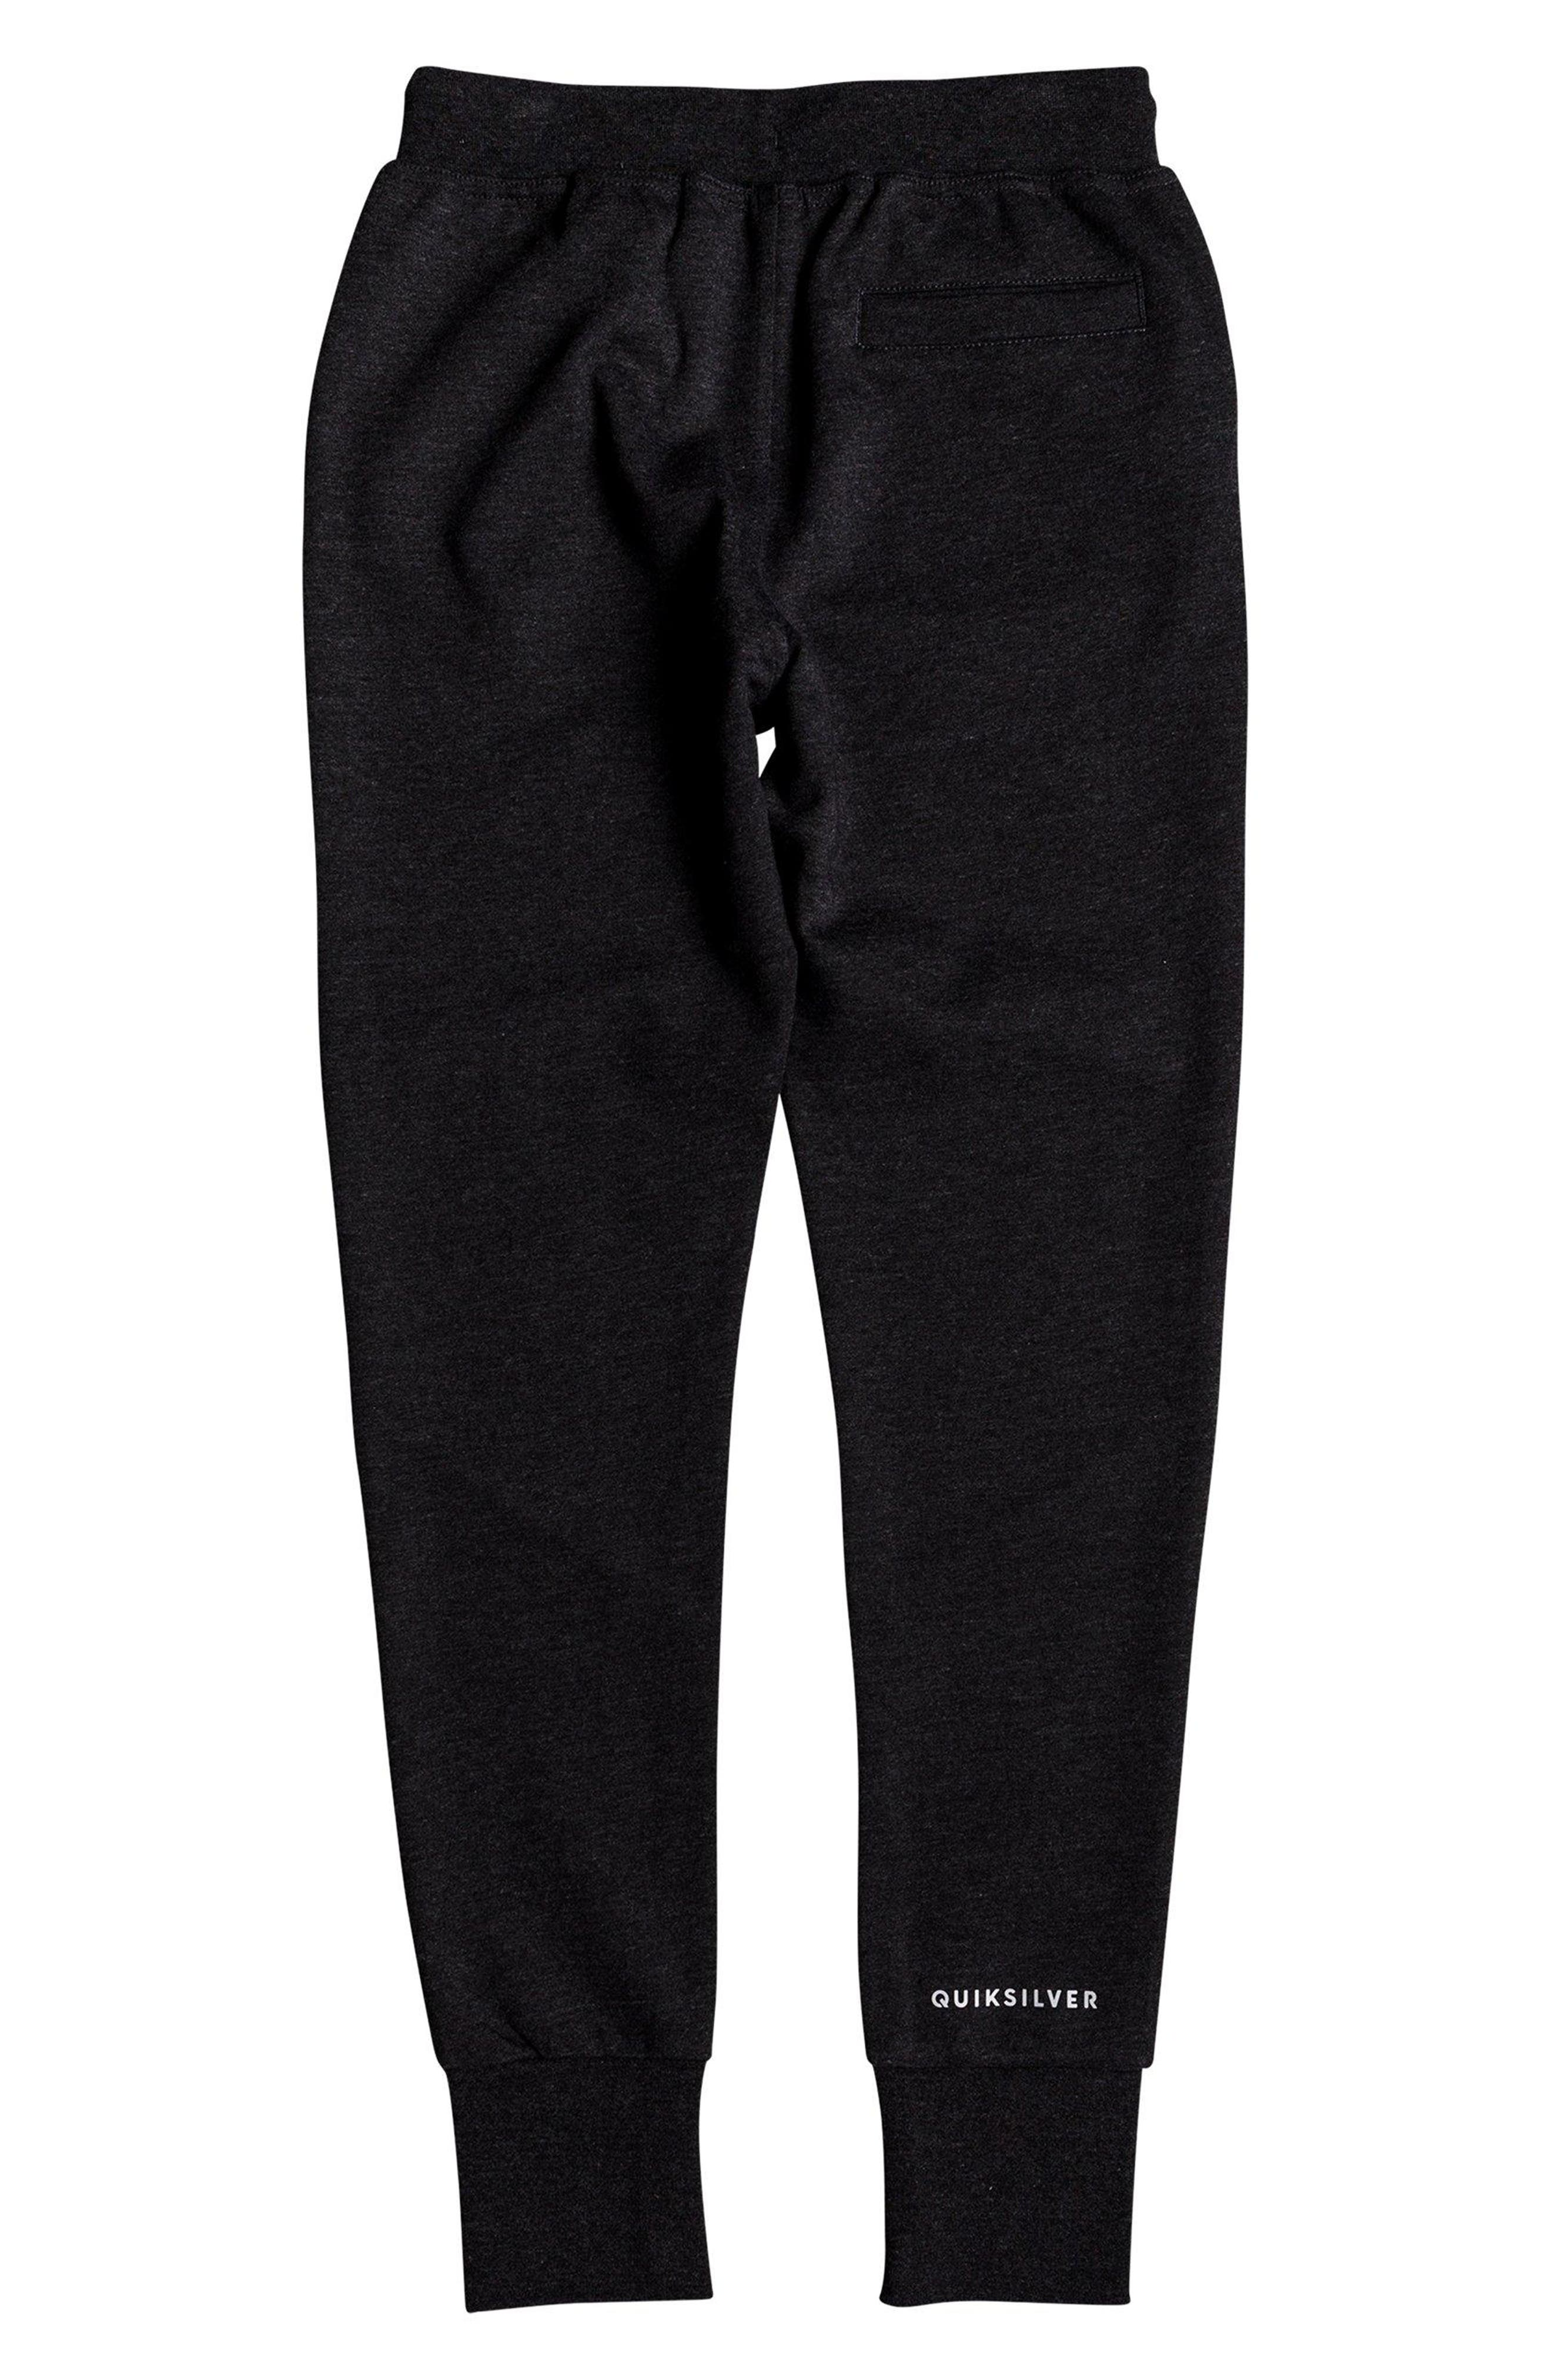 QUIKSILVER,                             Izu Sula Jogger Pants,                             Alternate thumbnail 2, color,                             020